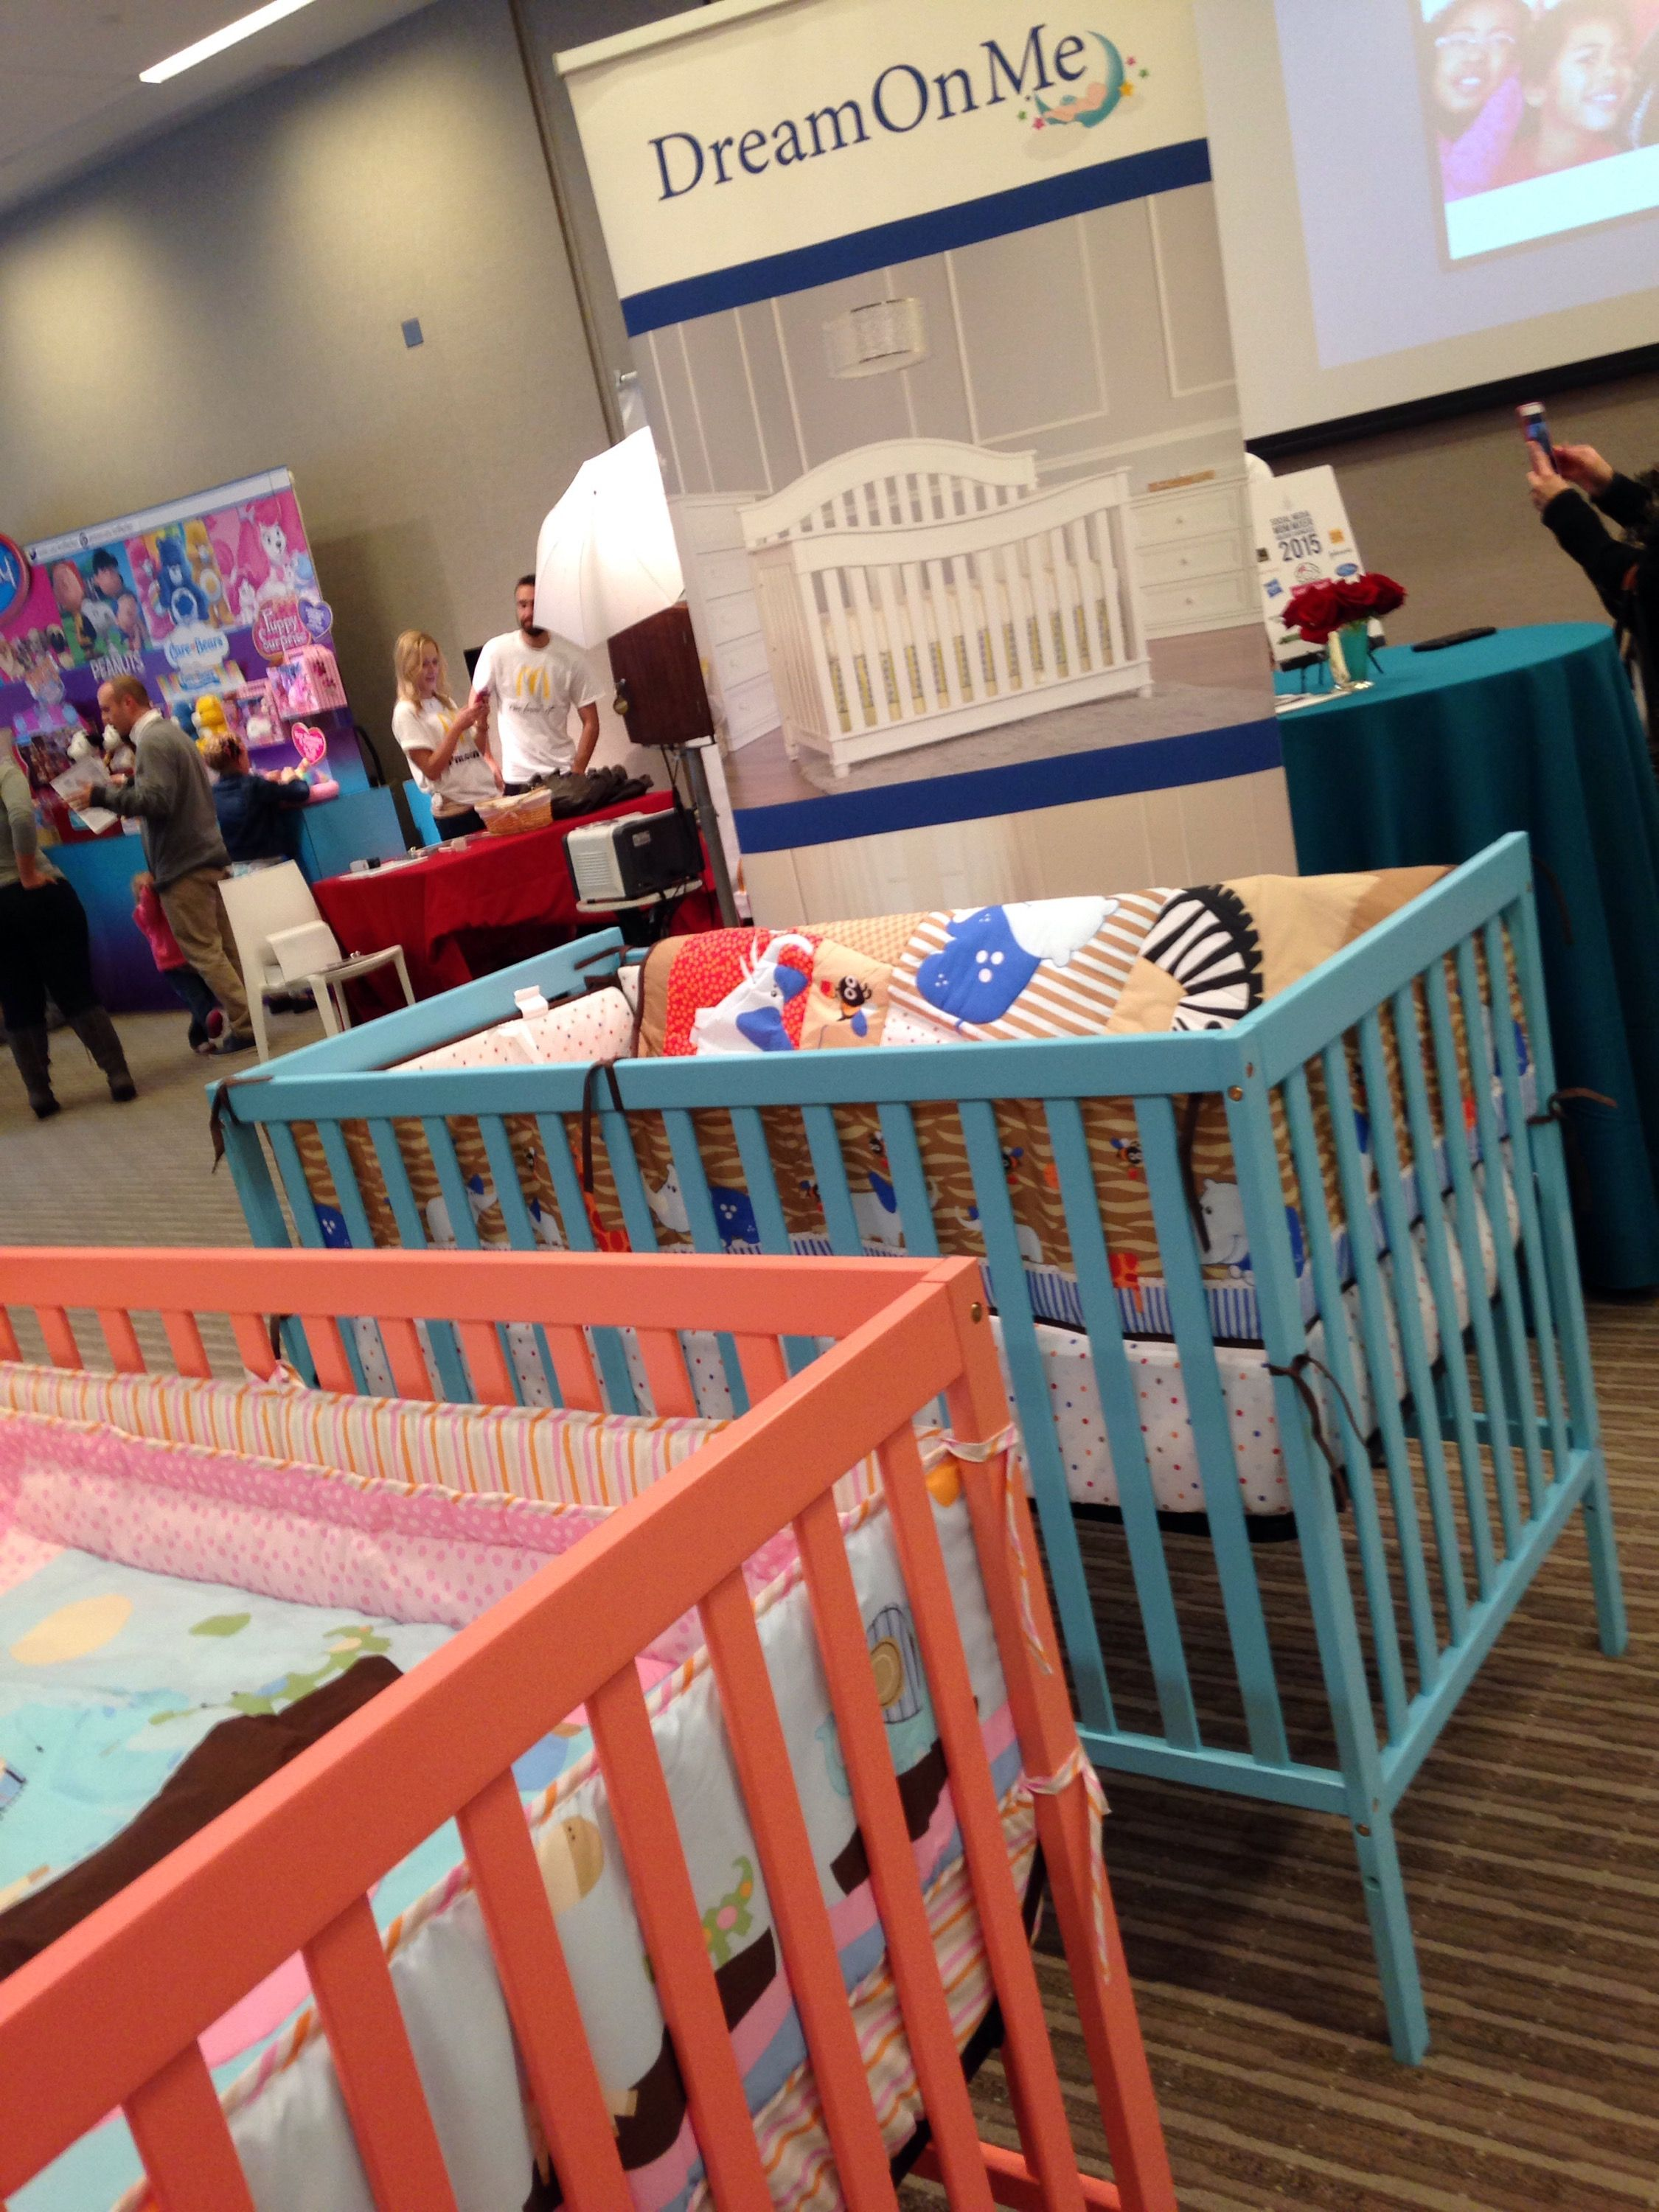 Dream On Me Synergy 5 In 1 Convertible Crib Video Review #MomMixer @